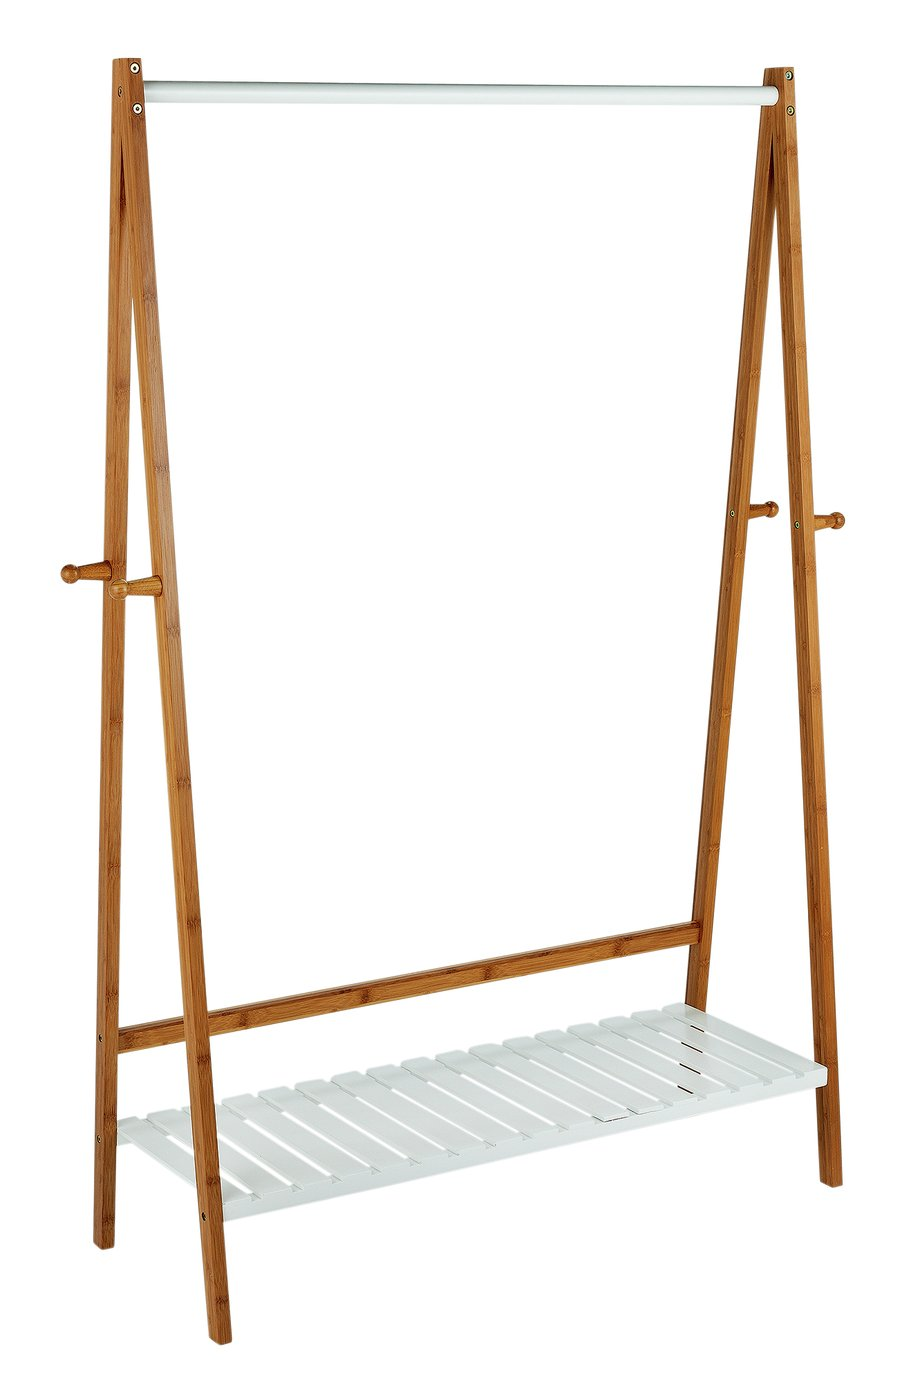 Argos Home Belvoir Clothes Rail with Shelf - Bamboo & White